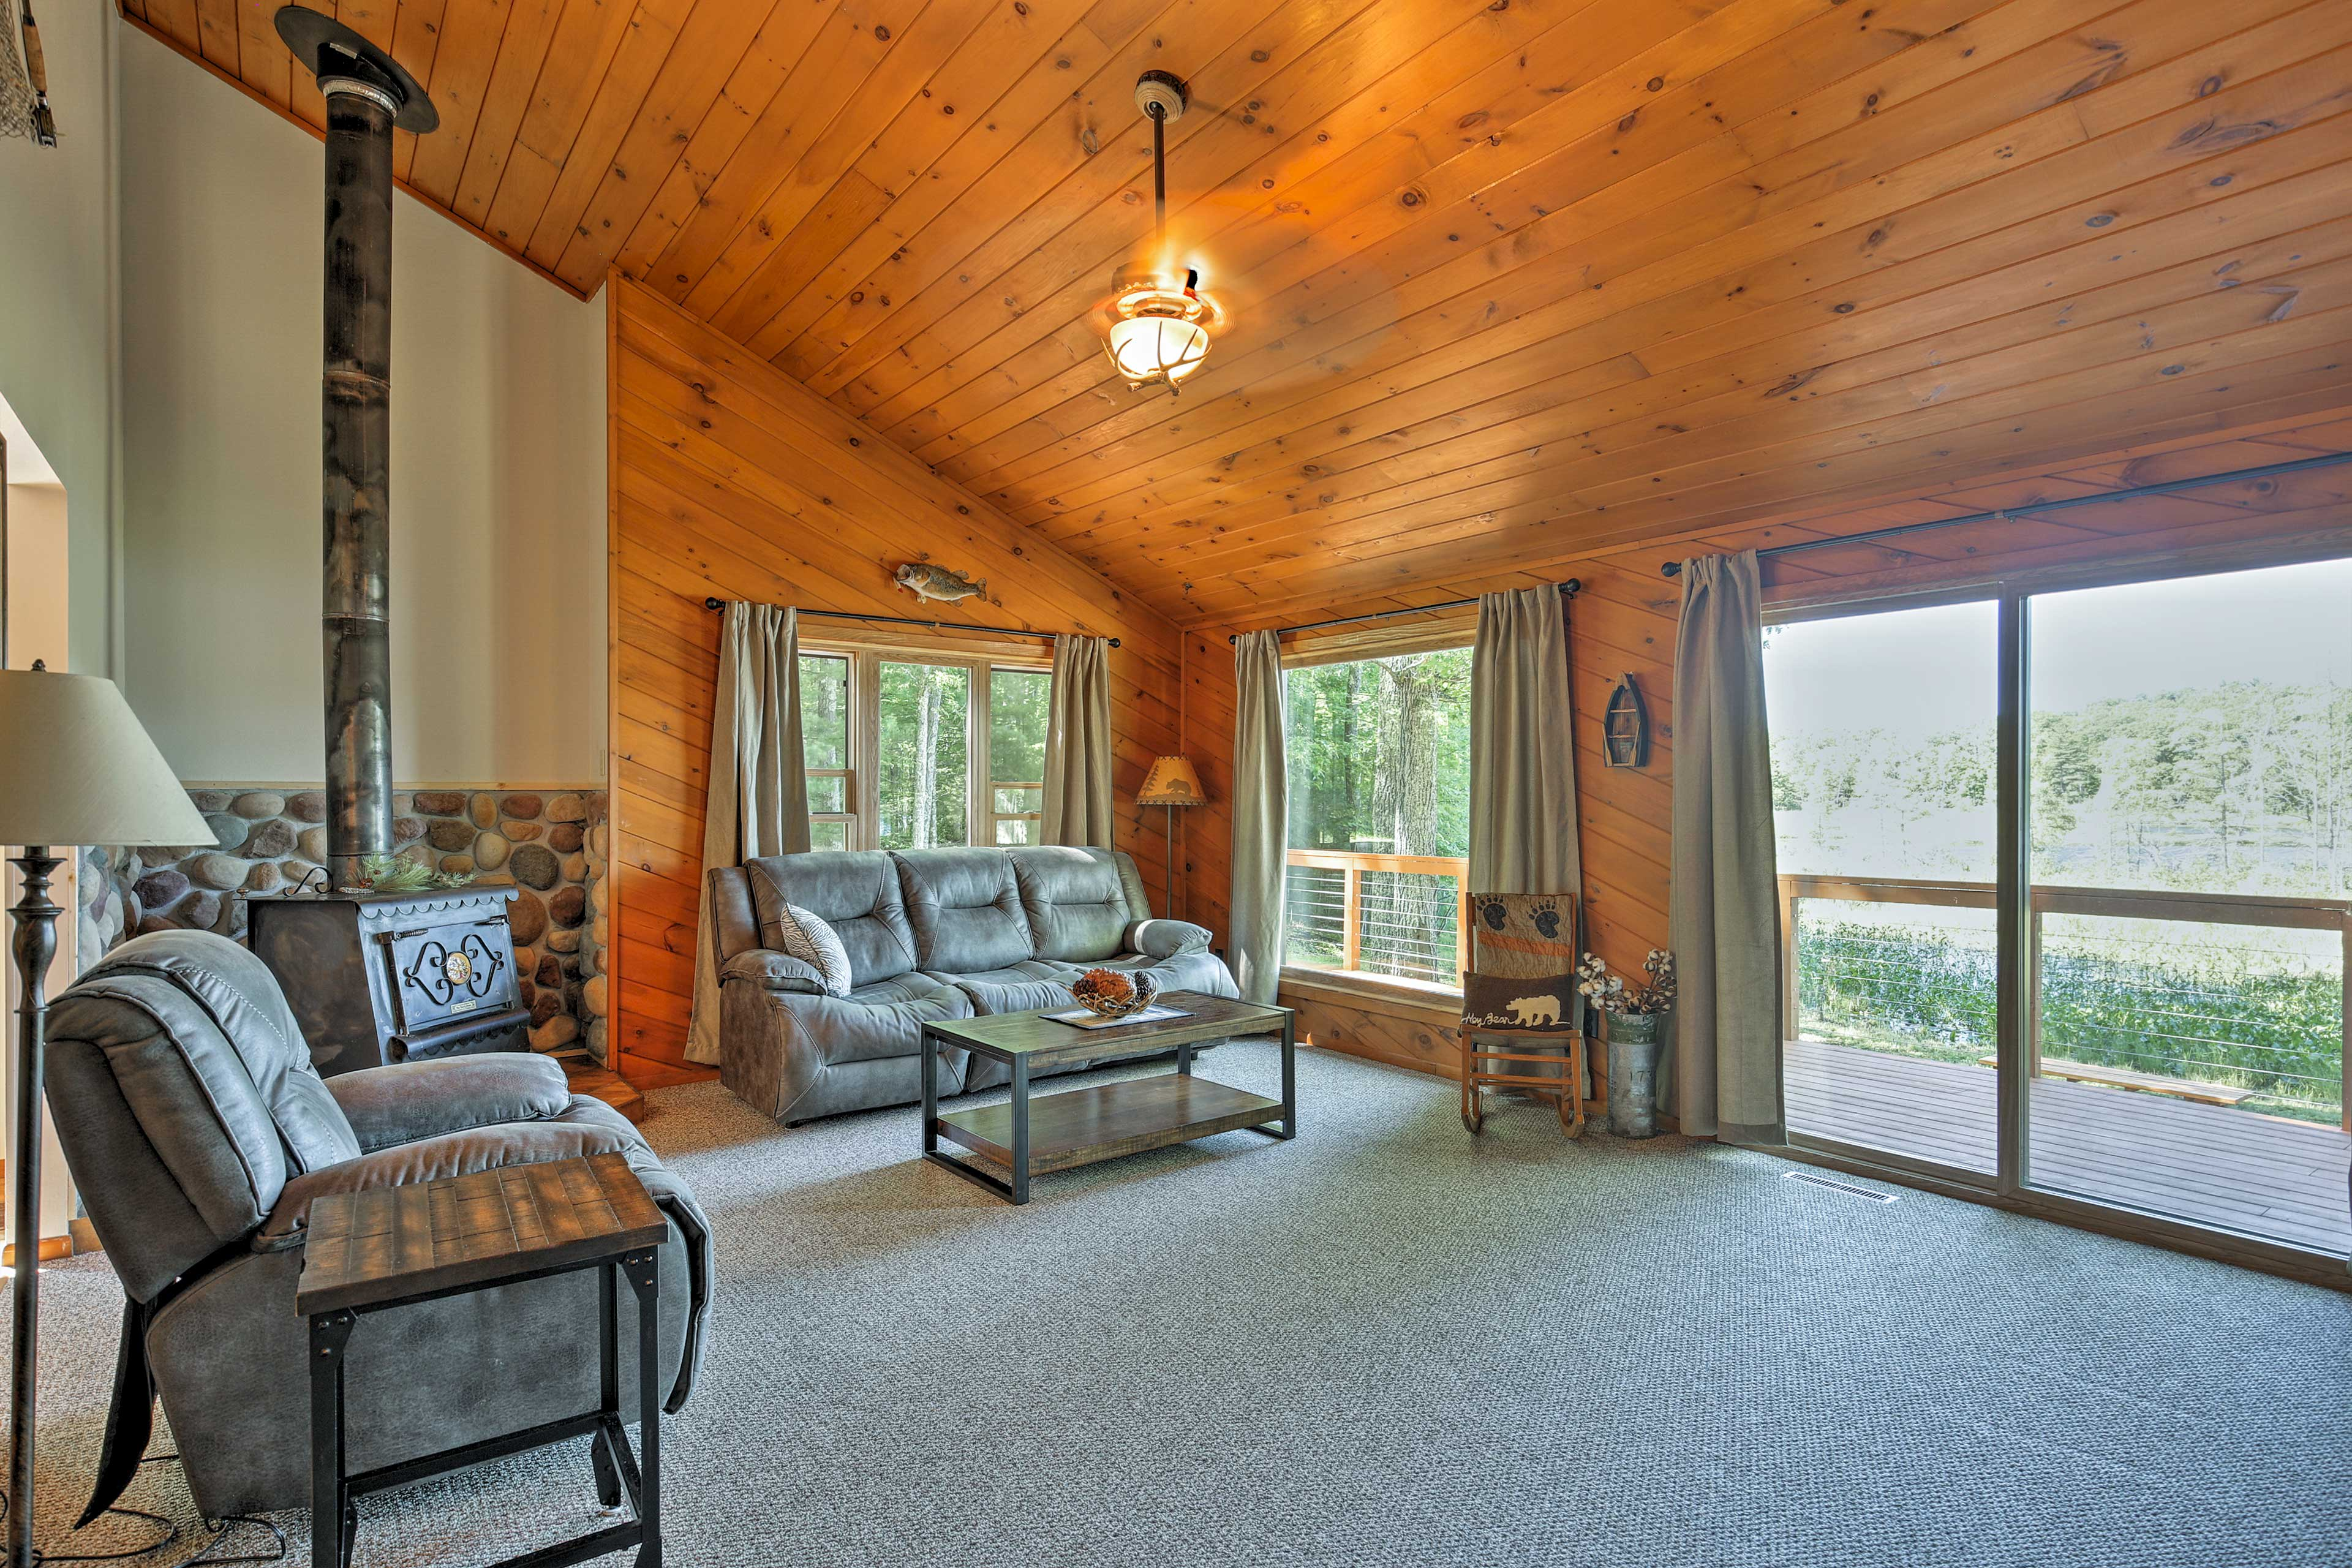 The well-appointed cabin comfortably sleeps all your friends & family.